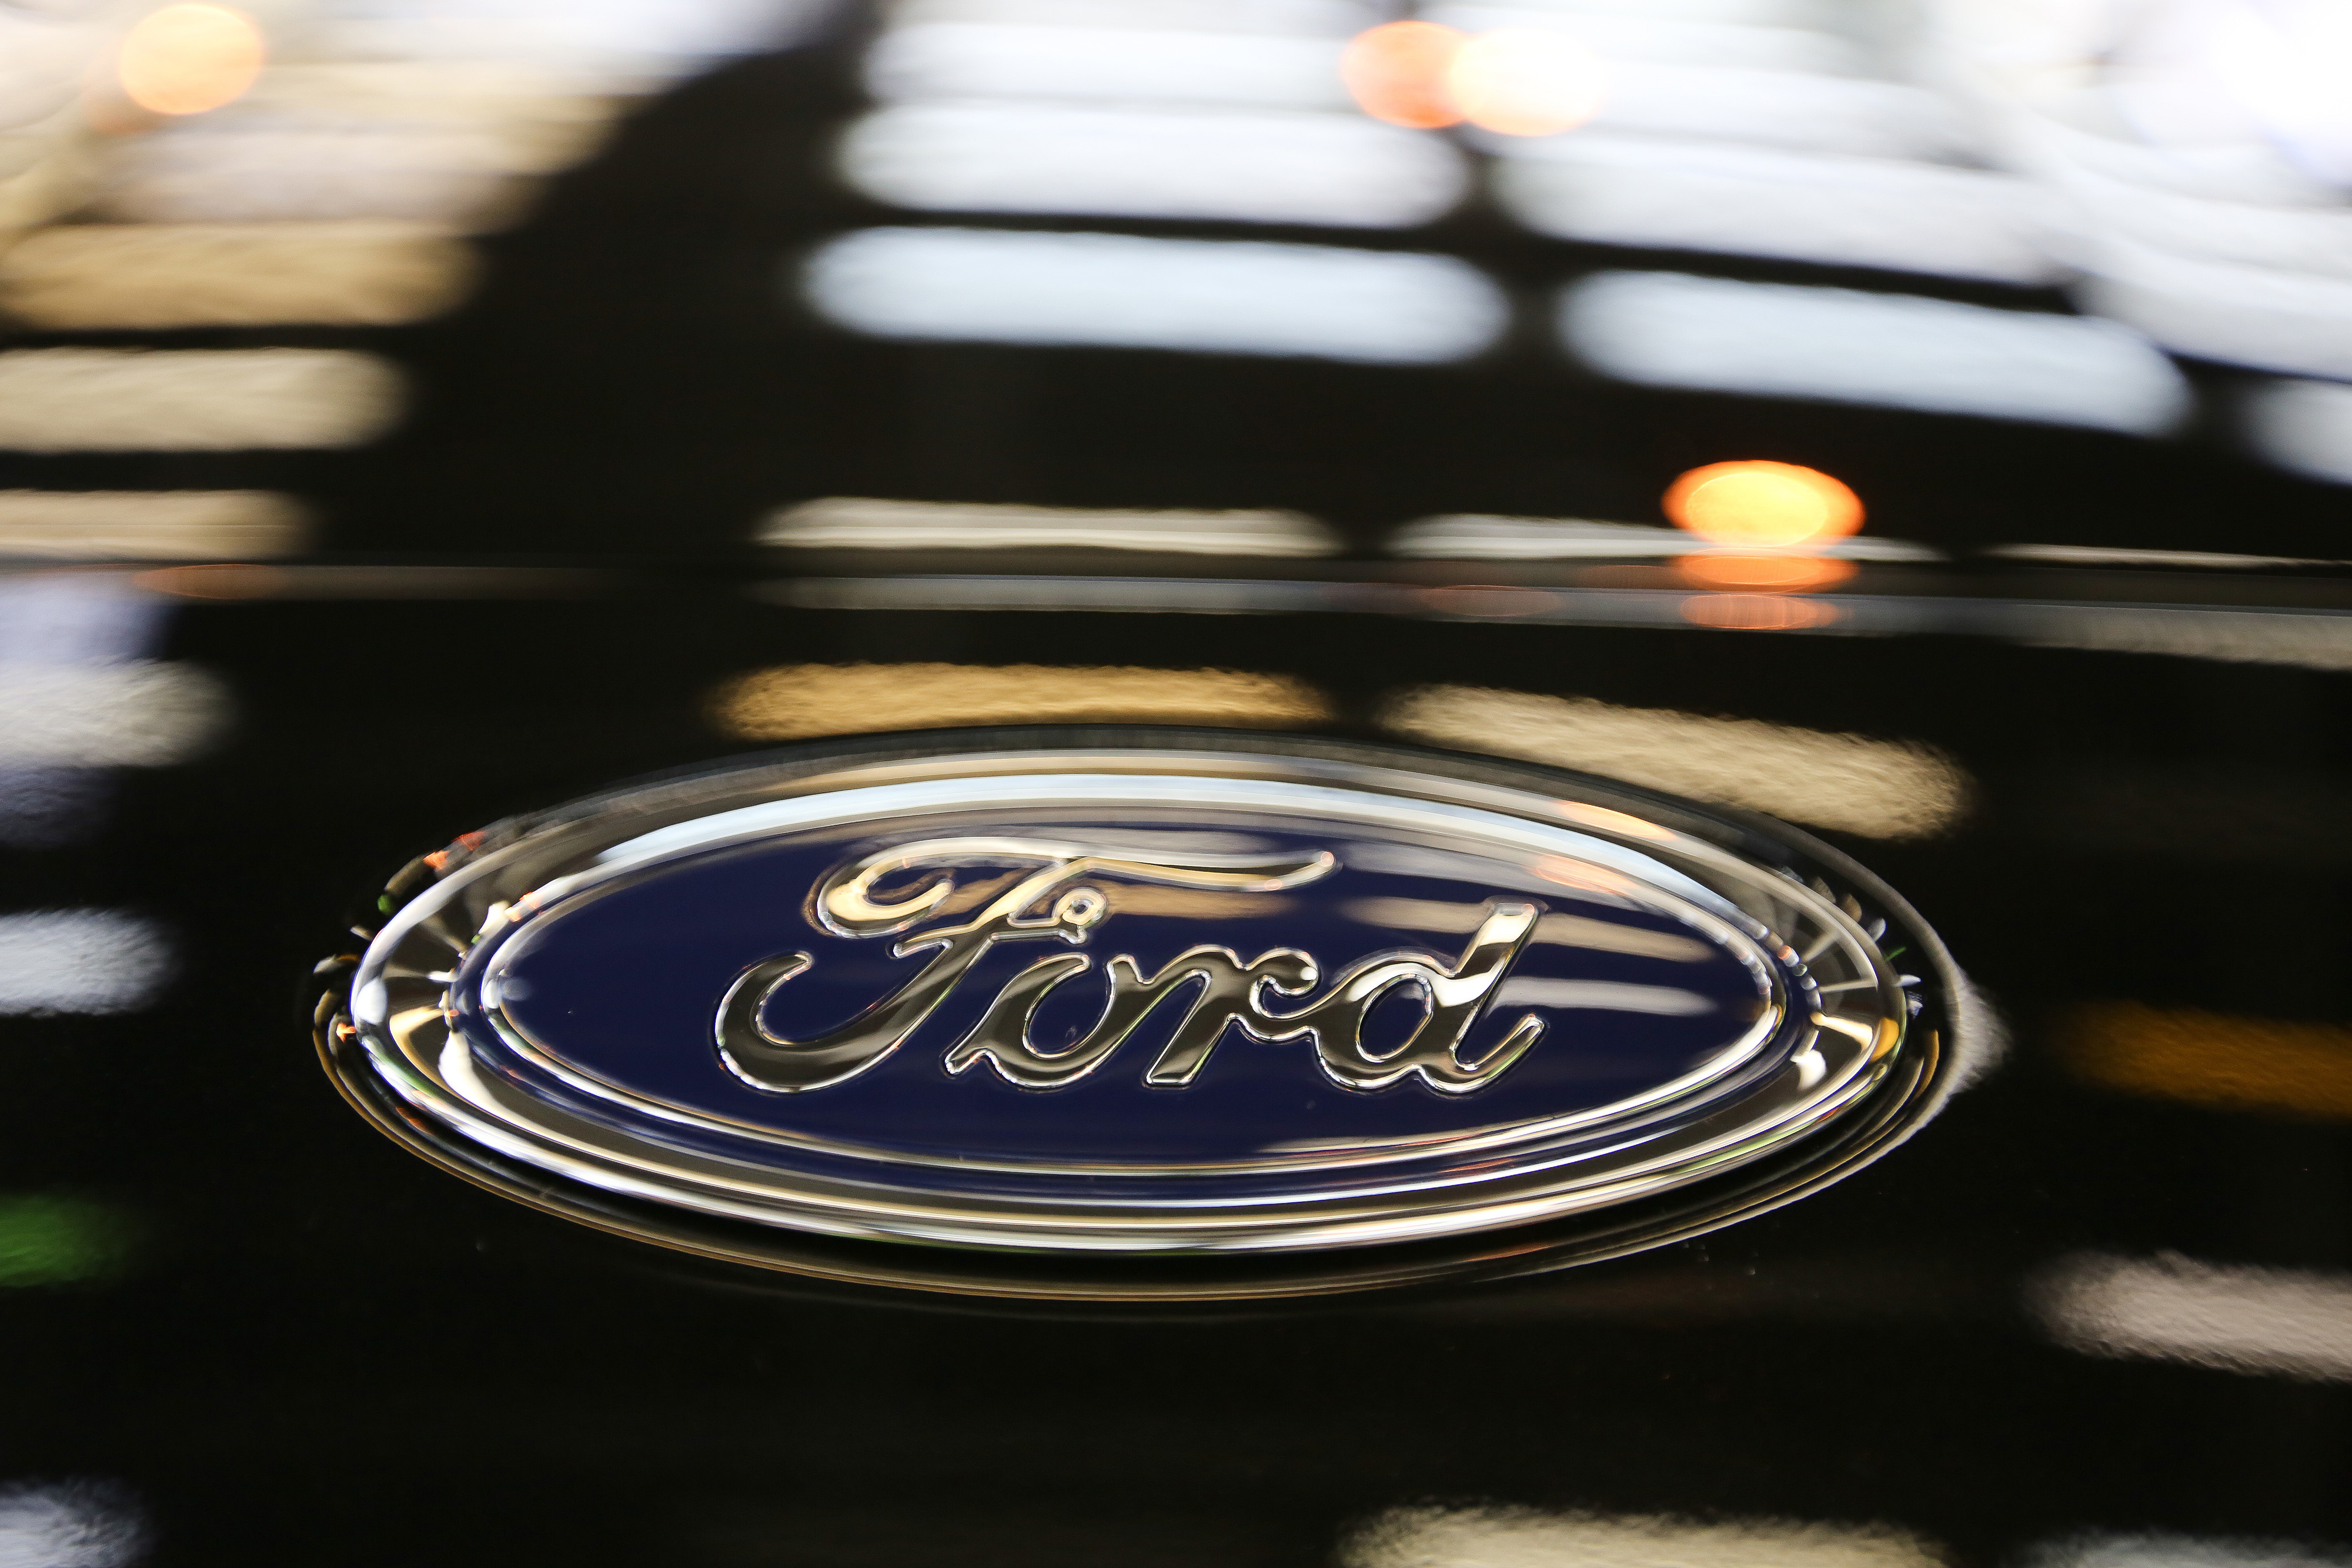 Ford Focus Automobile Production At Ford Motor Co.'s OAO Sollers Plant